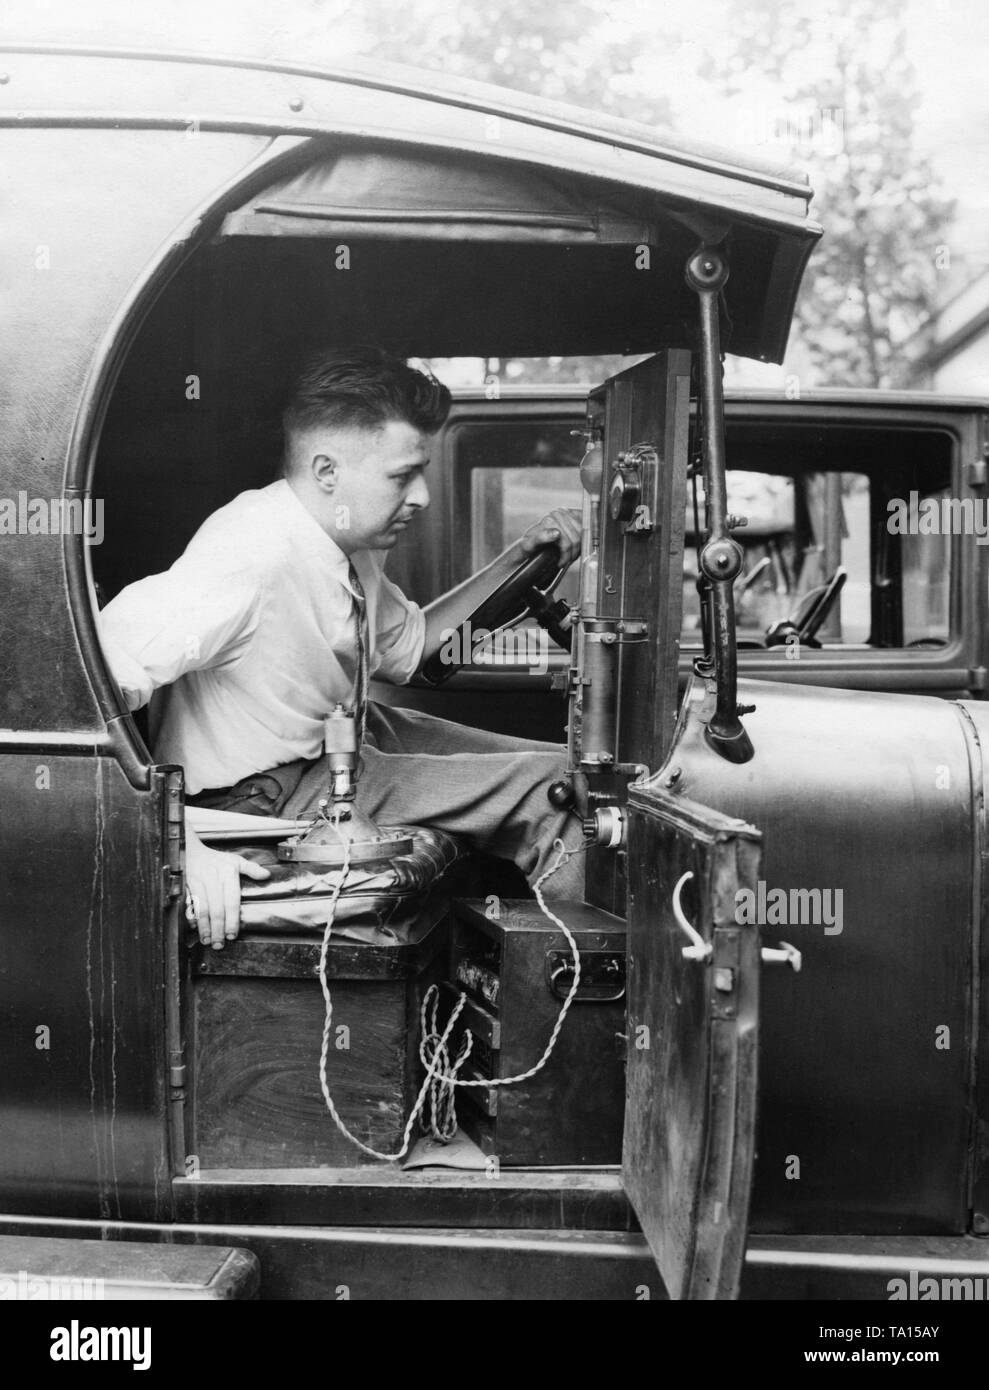 An employee of the Bureau of Standards in Washington tests trucks for their suitability for conversion to ambulances. The suspension comfort is checked with the help of a specially made device. Stock Photo